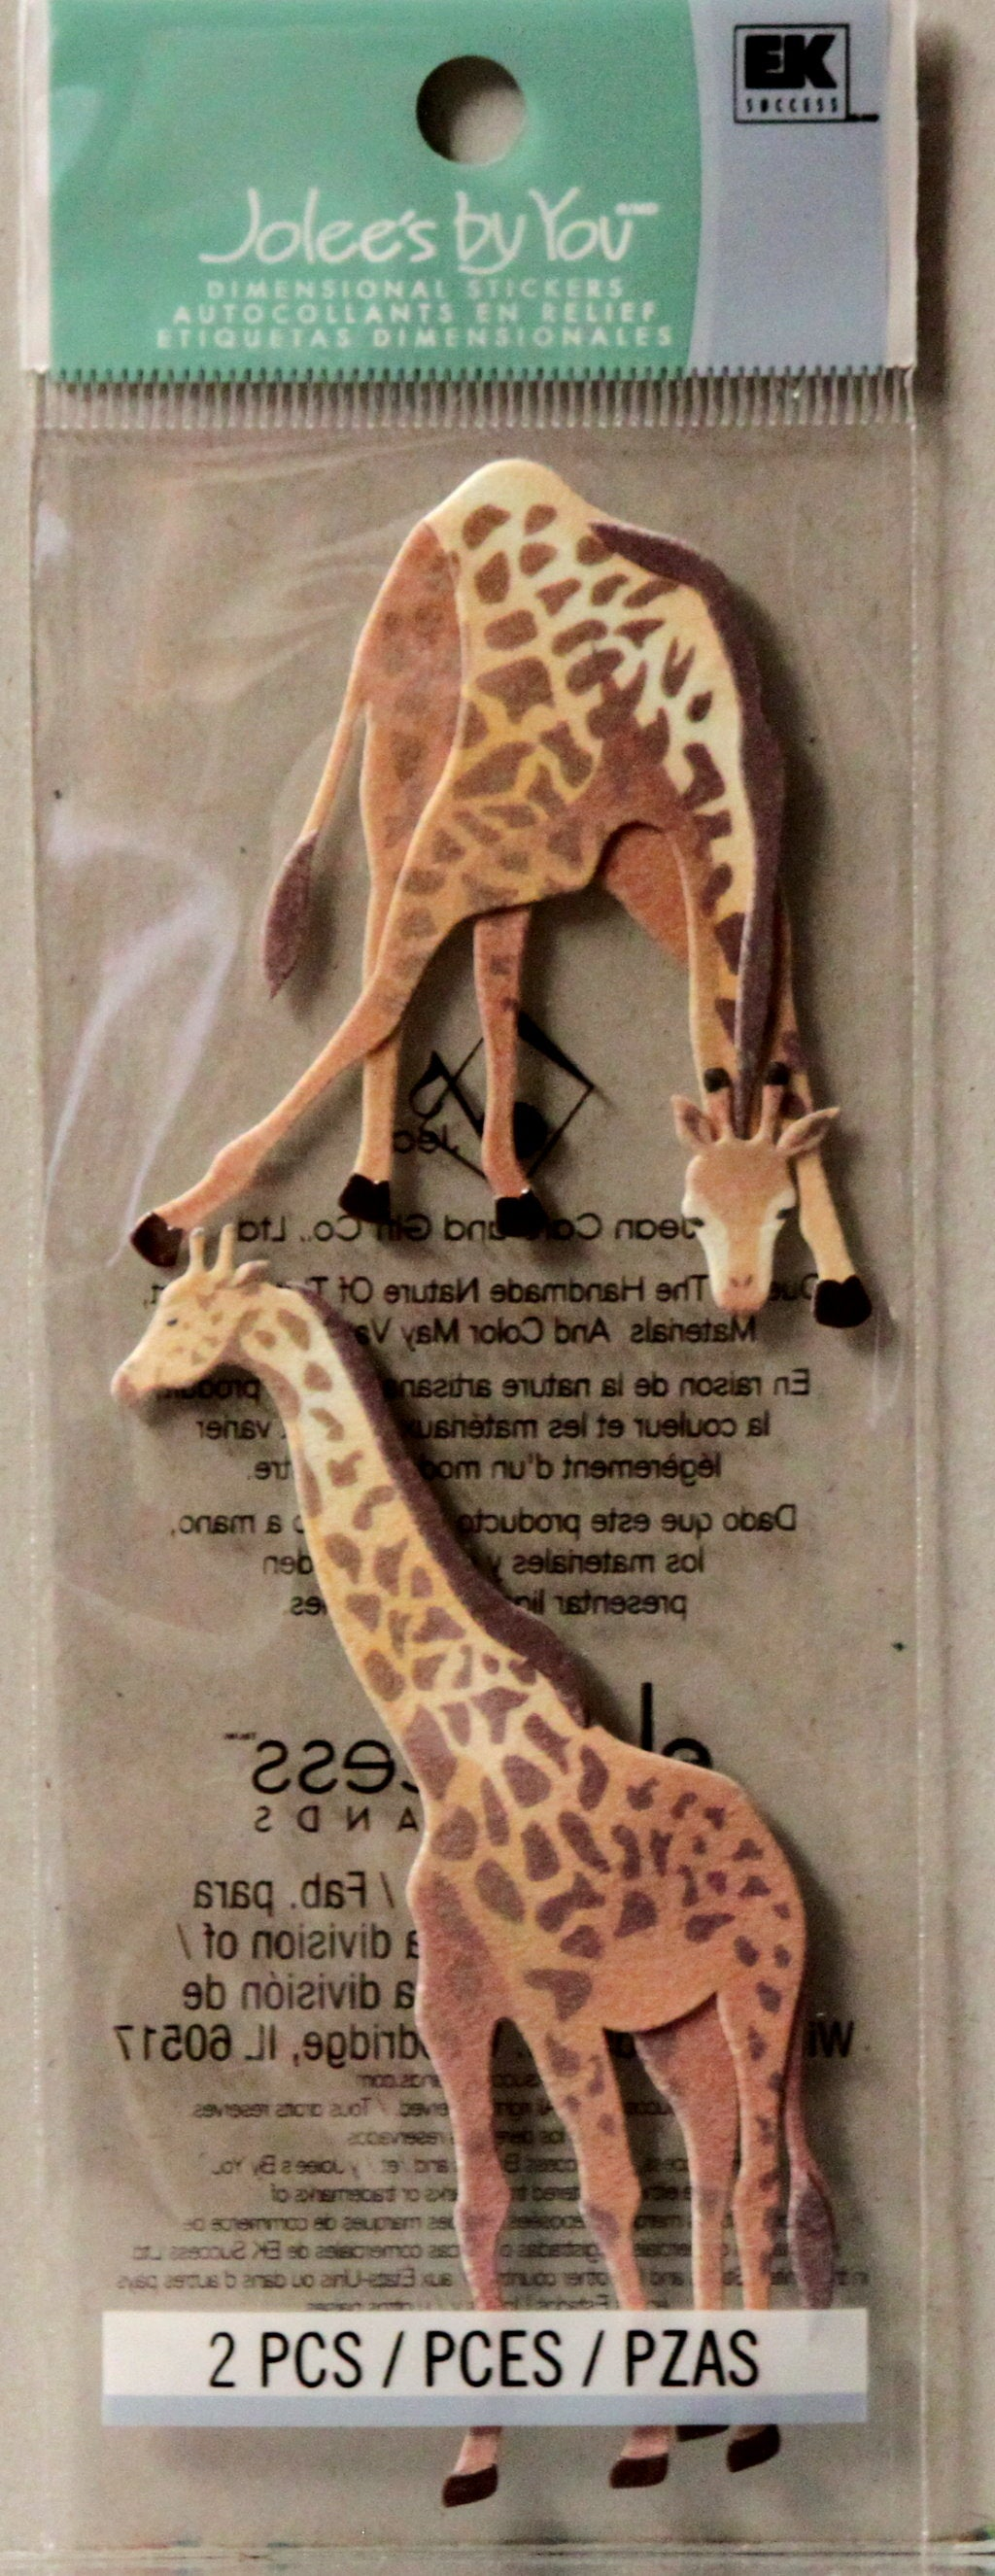 Jolee's Boutique Jolee's By You Giraffe Dimensional Stickers